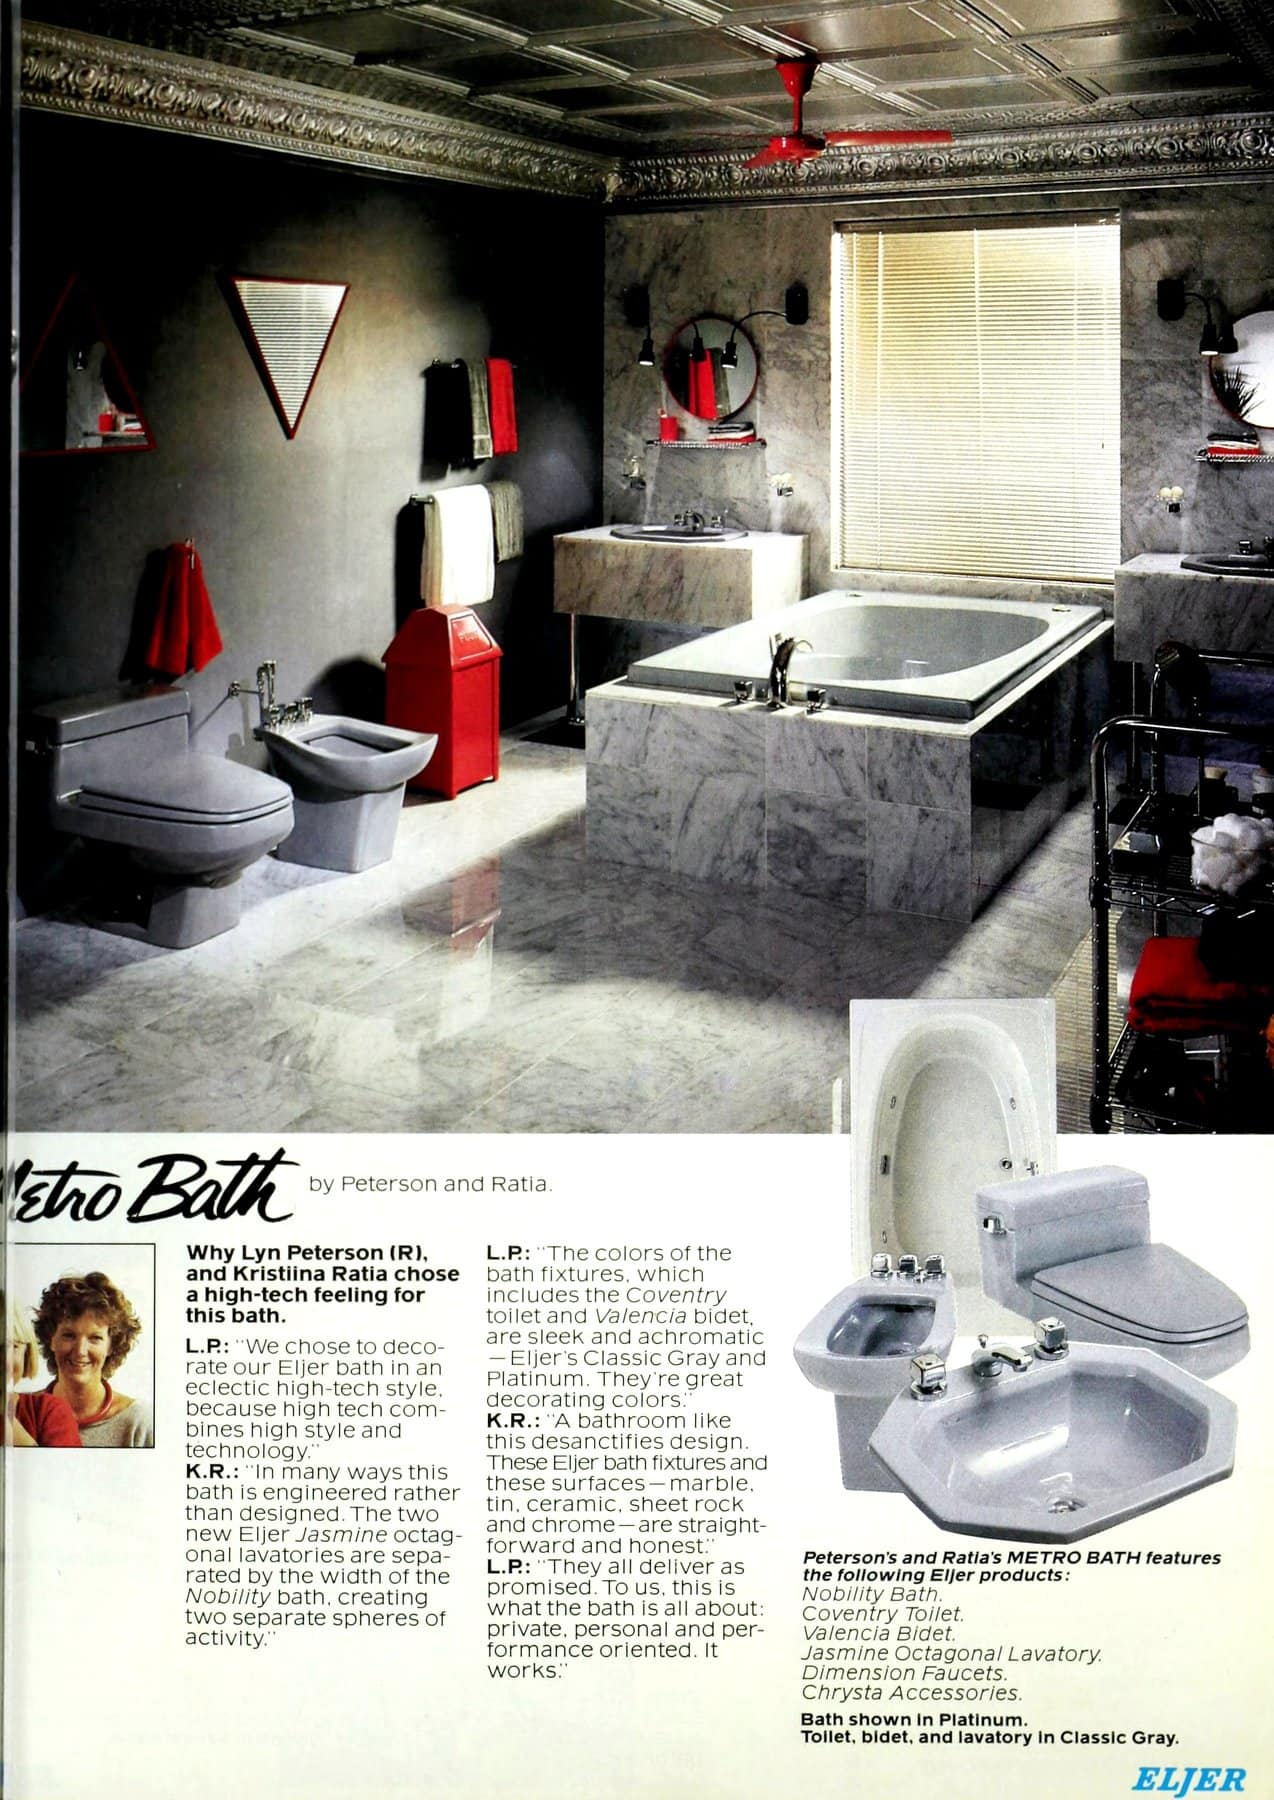 Retro metro marble bathroom design and decor (1986)